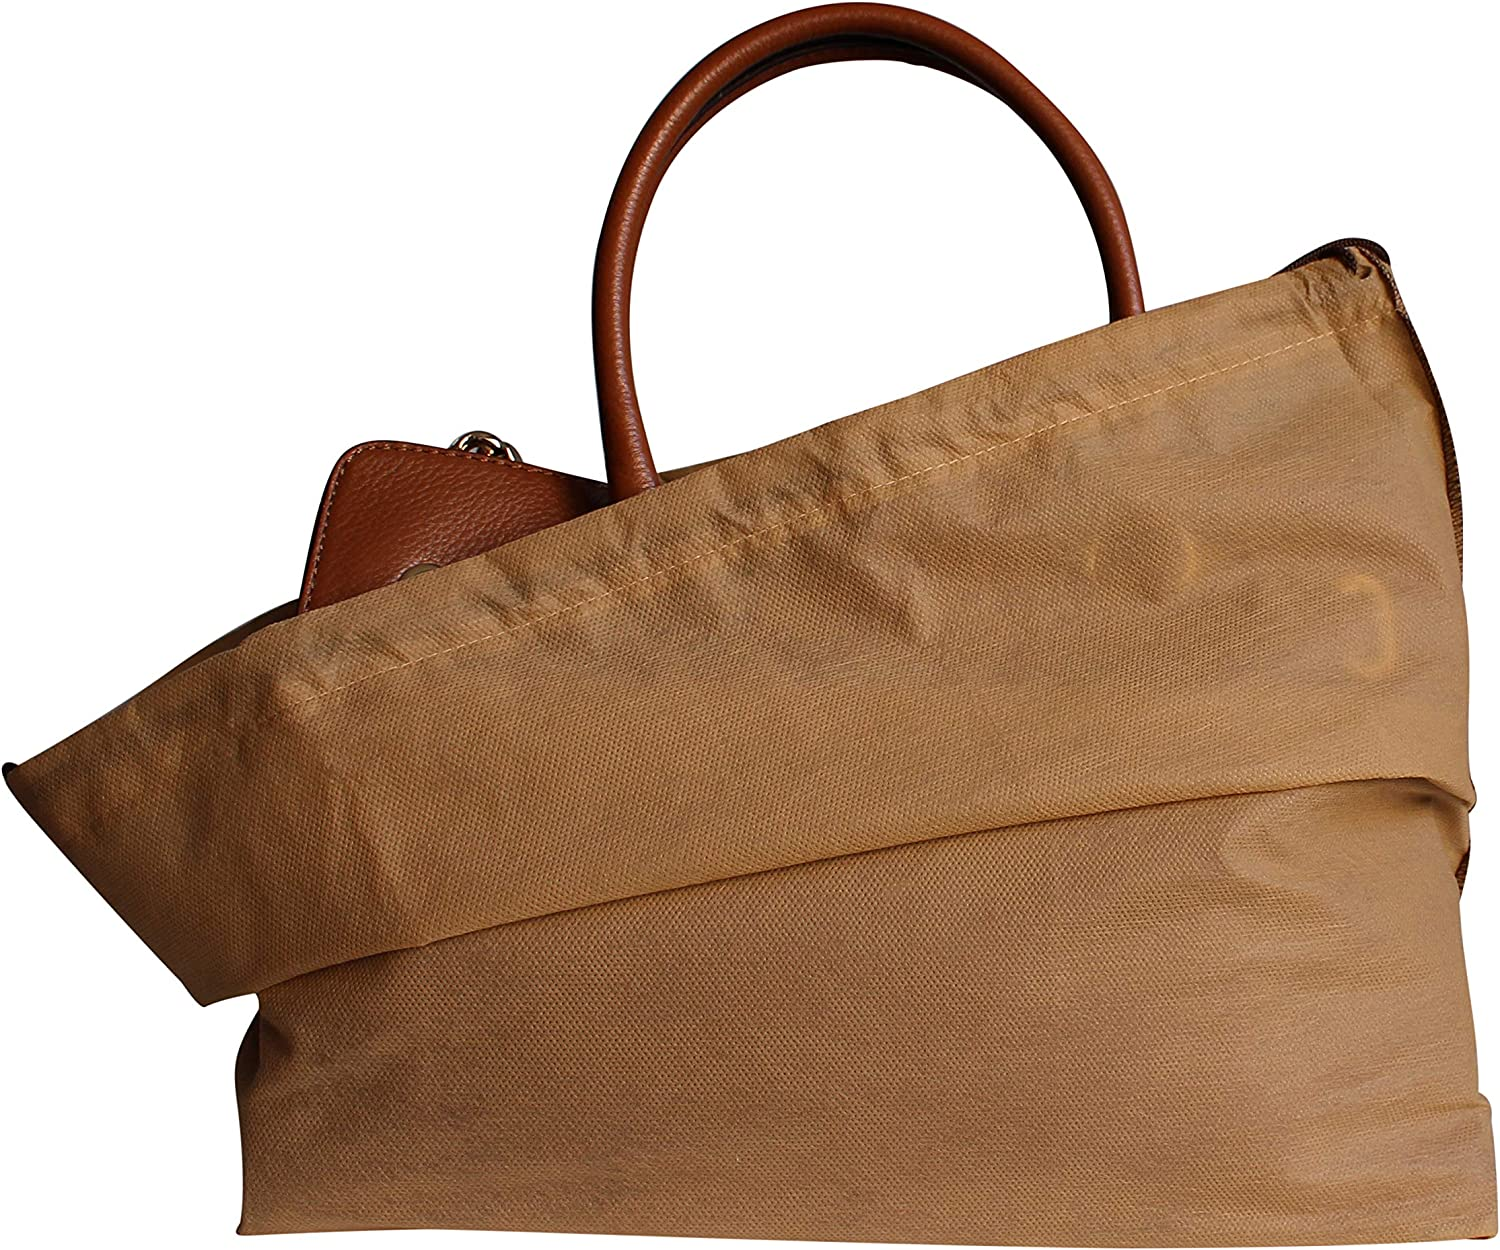 Dust Max 42% OFF Large special price !! Cover Bag for Handbags Purses Boots of 4 Set Shoes Non-wov